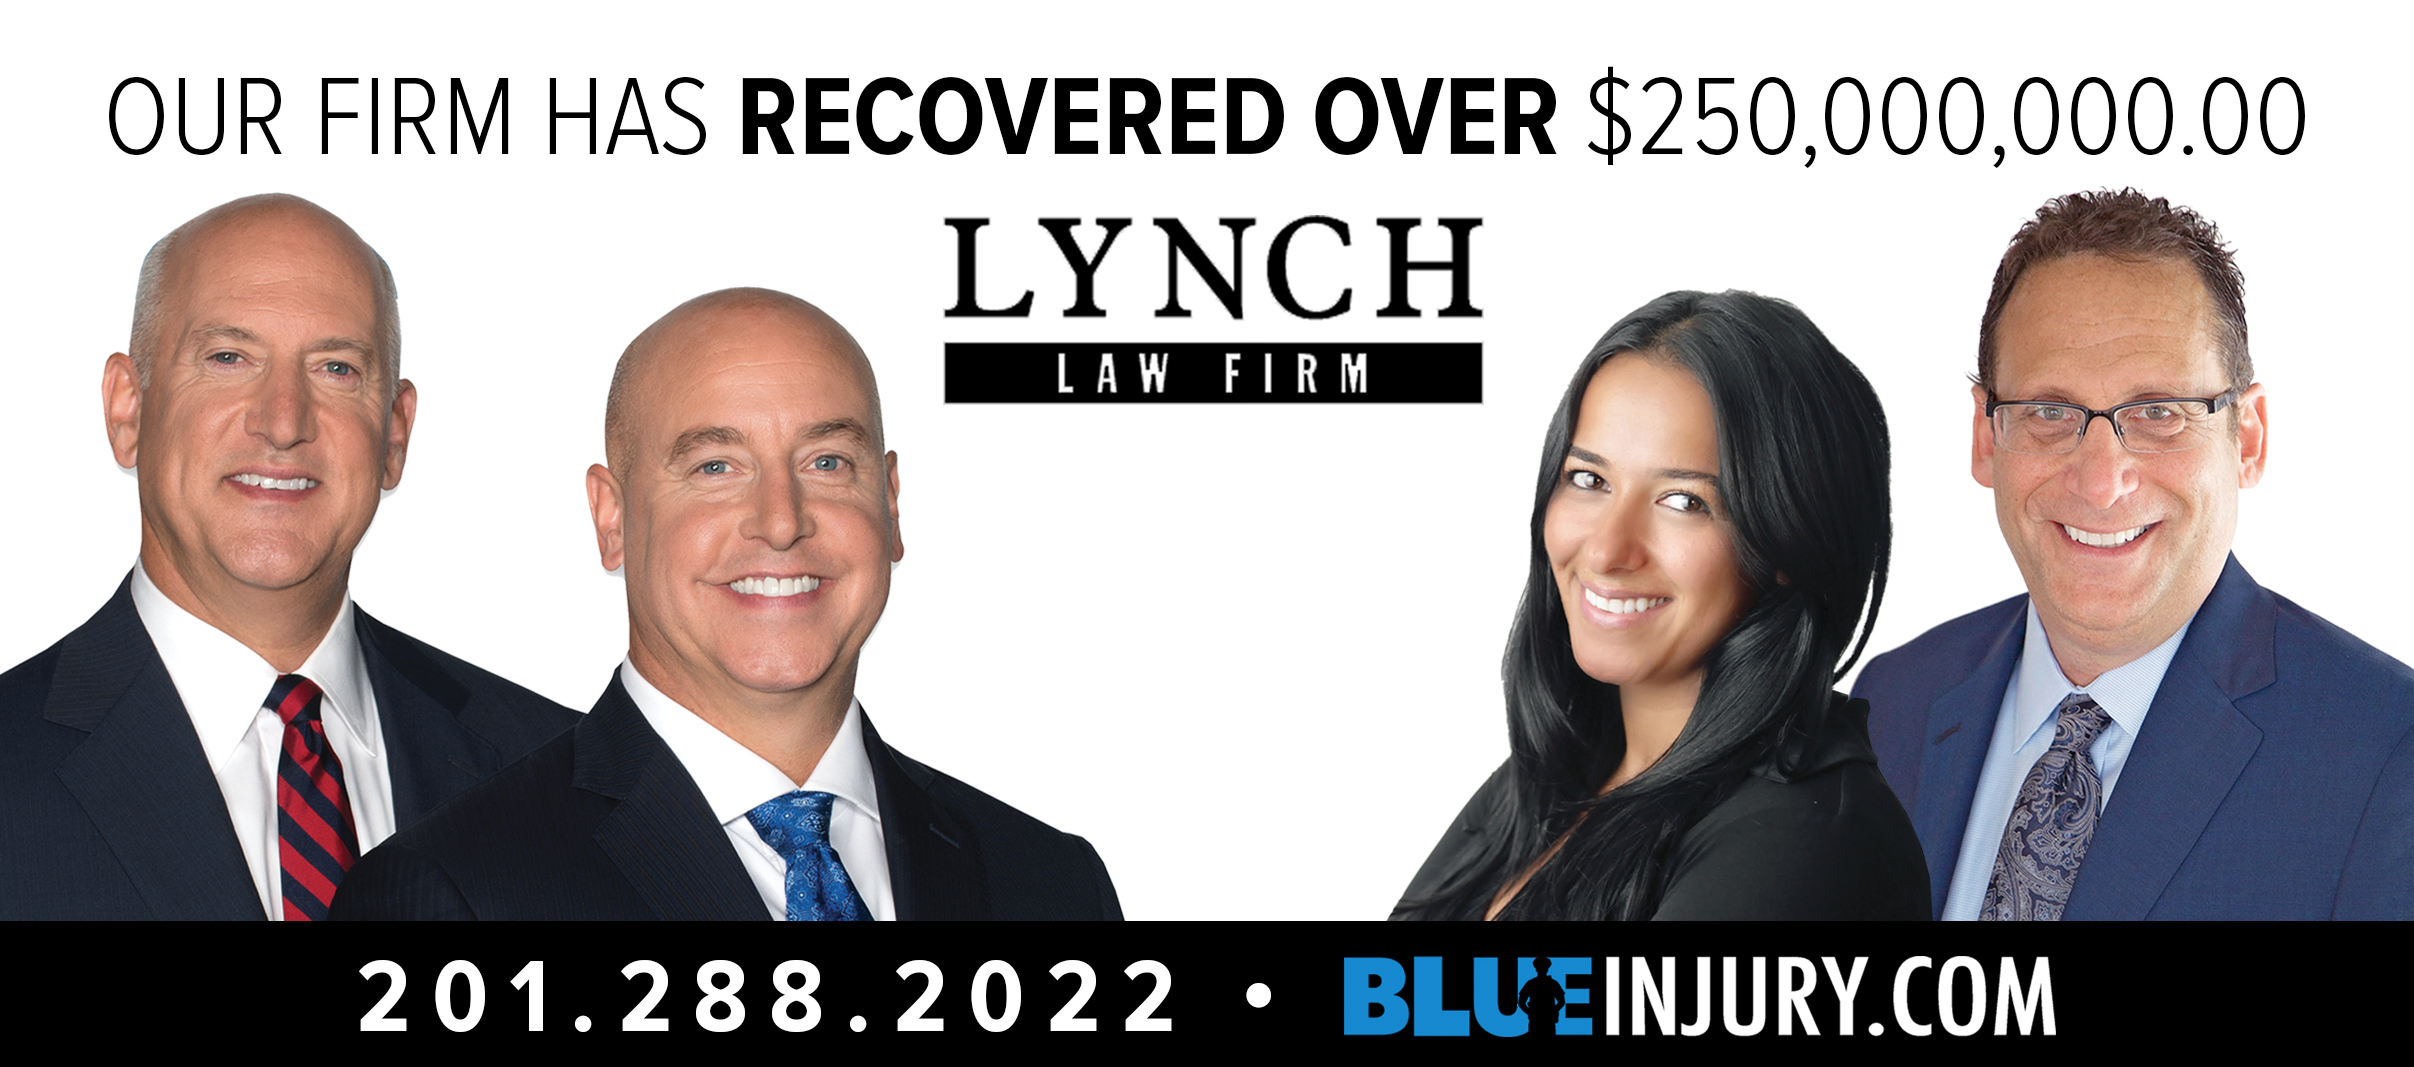 Lynch Full Banner Ad.jpg